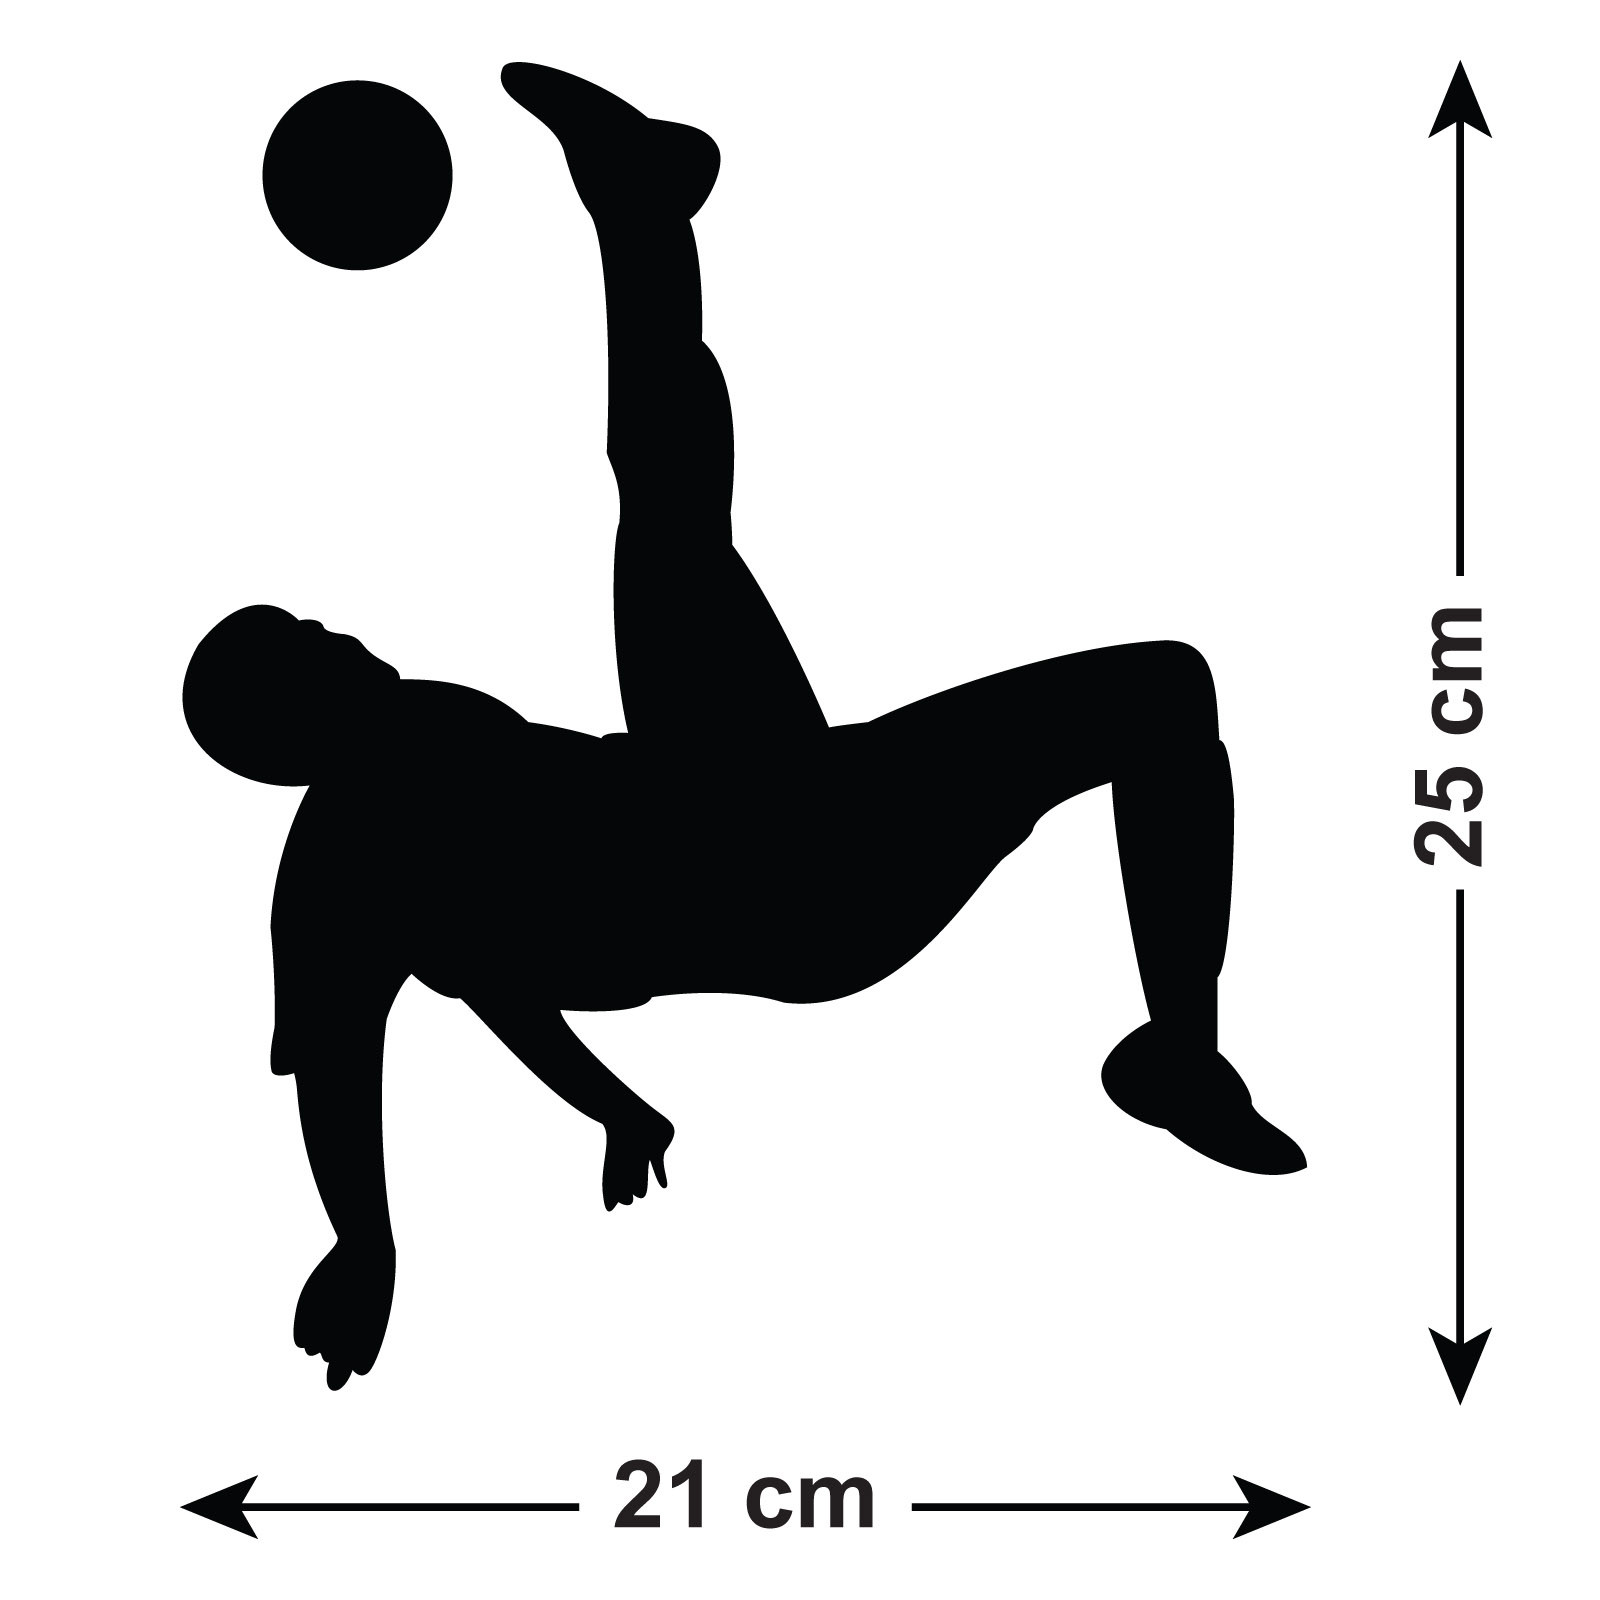 hight resolution of 1600x1600 footballer silhouette png transparent clip art image gallery